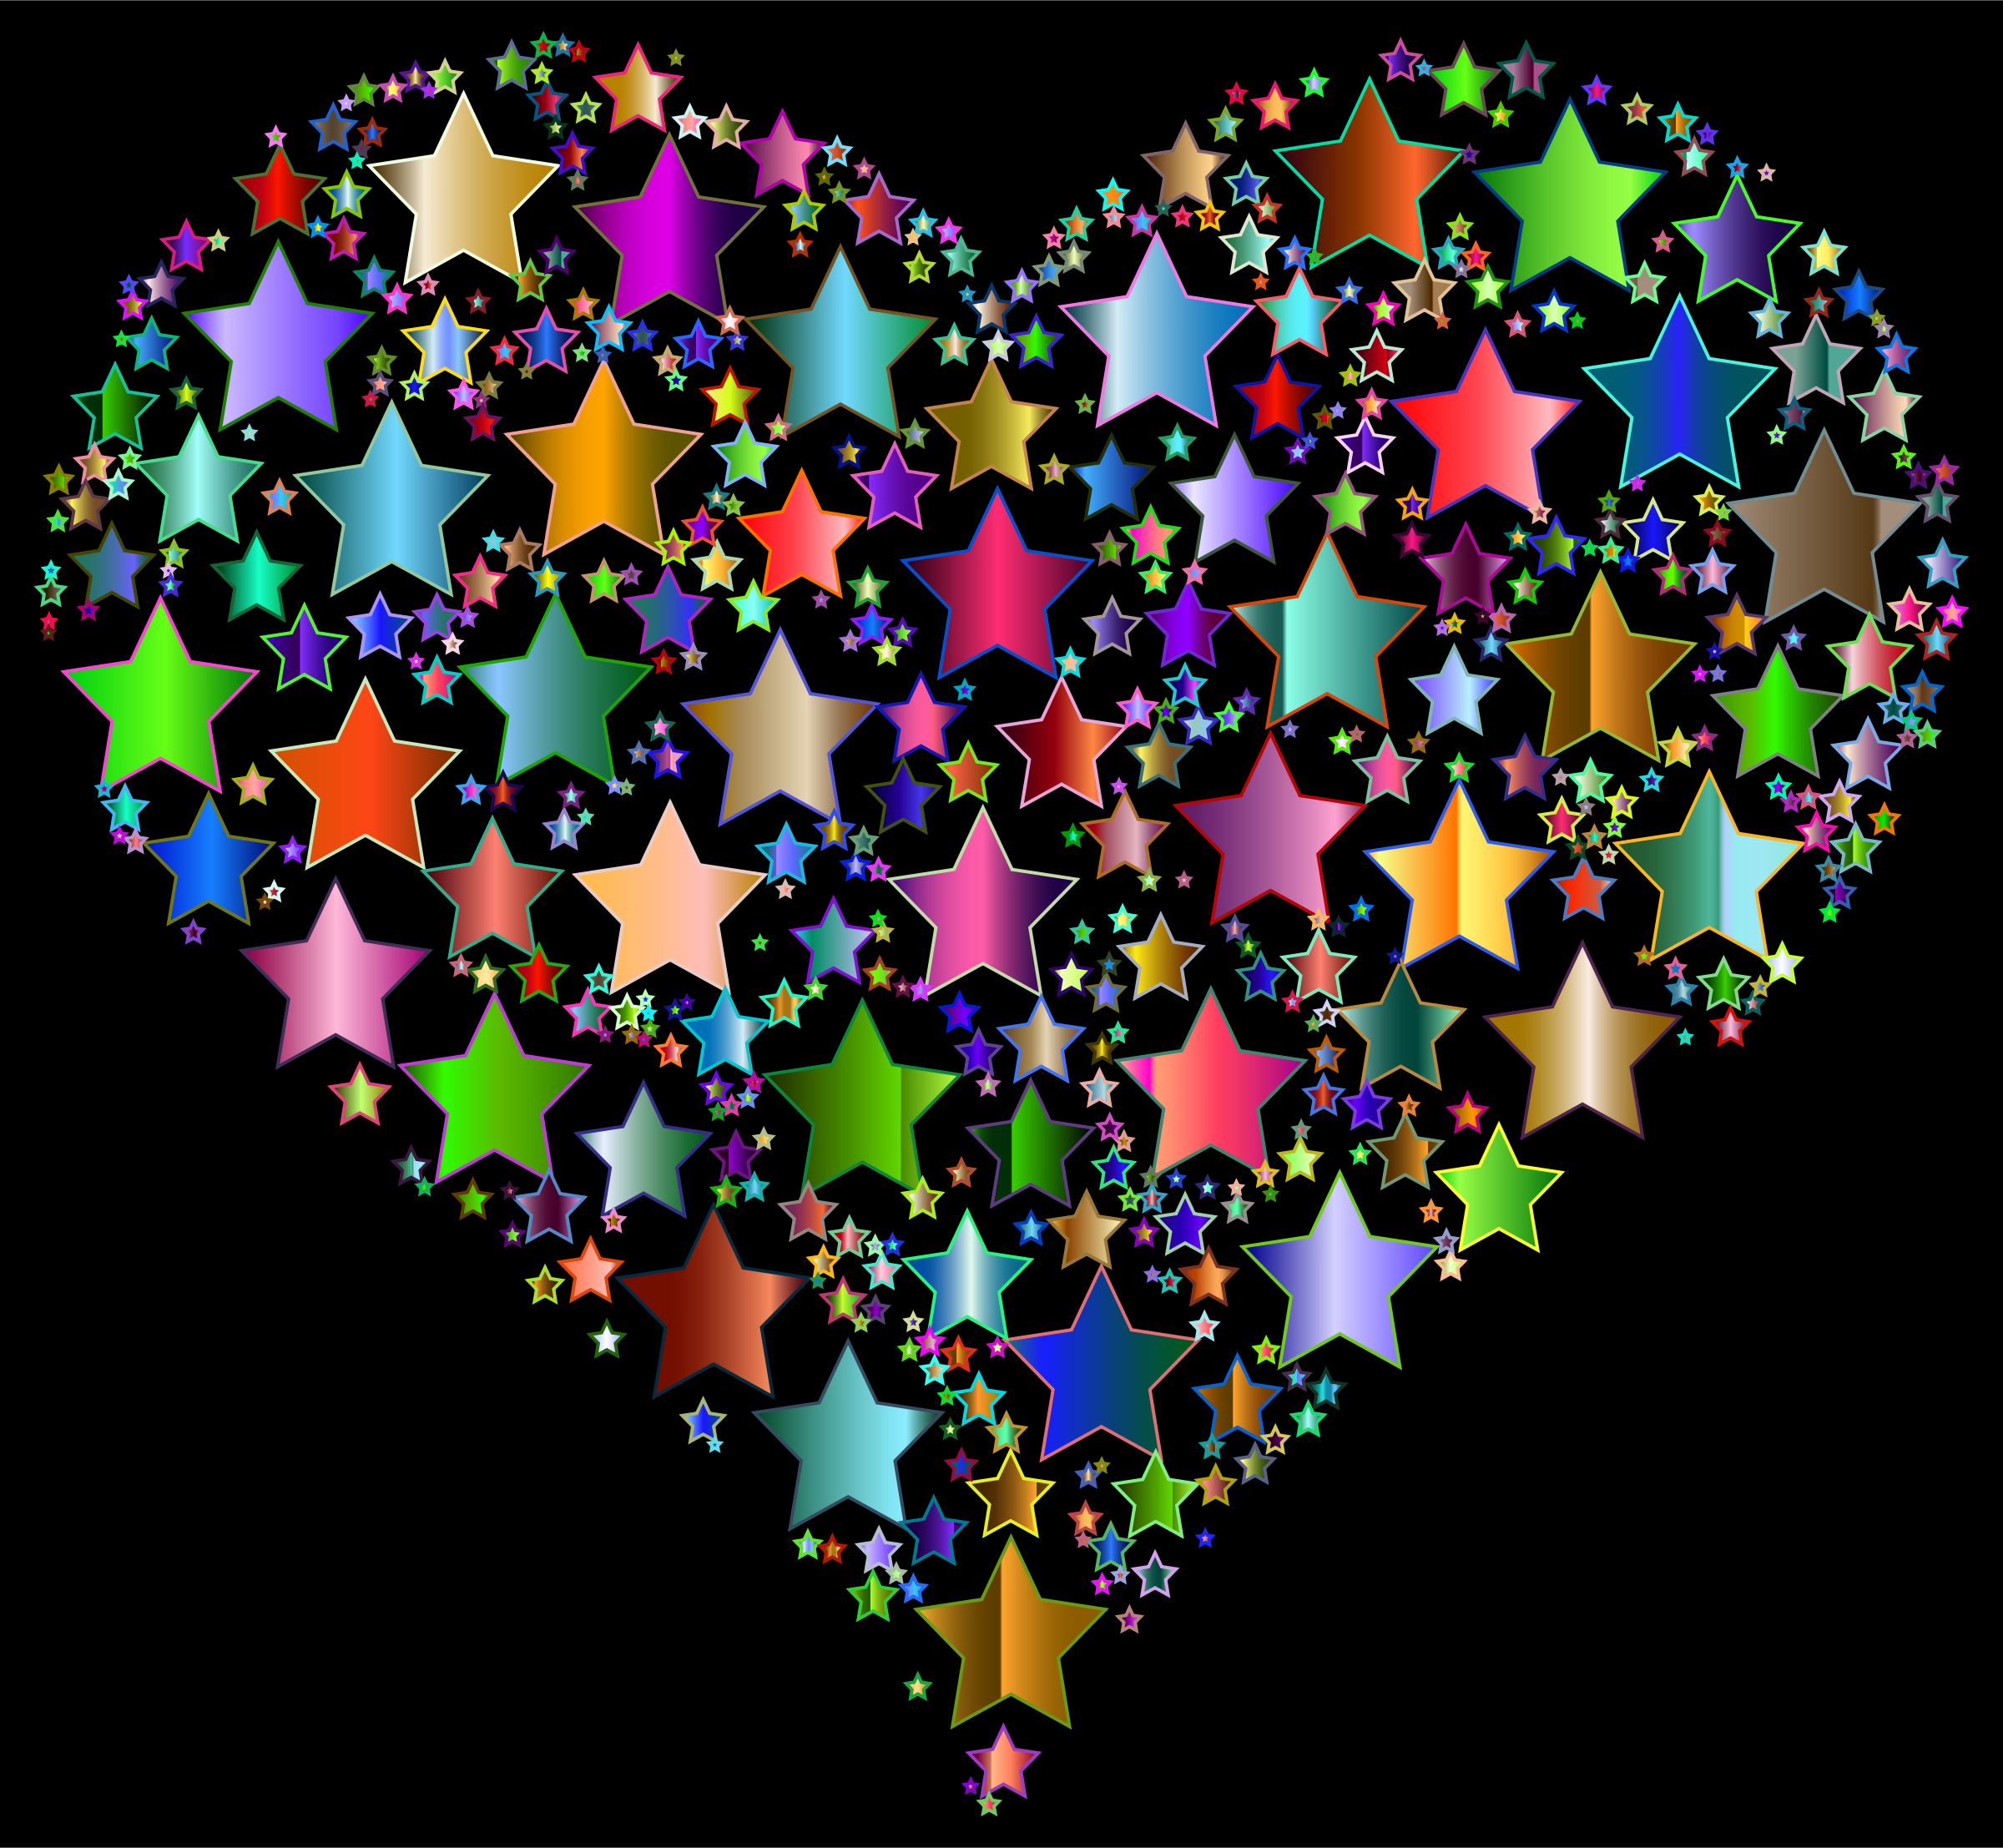 Colorful Heart Stars 9 by GDJ